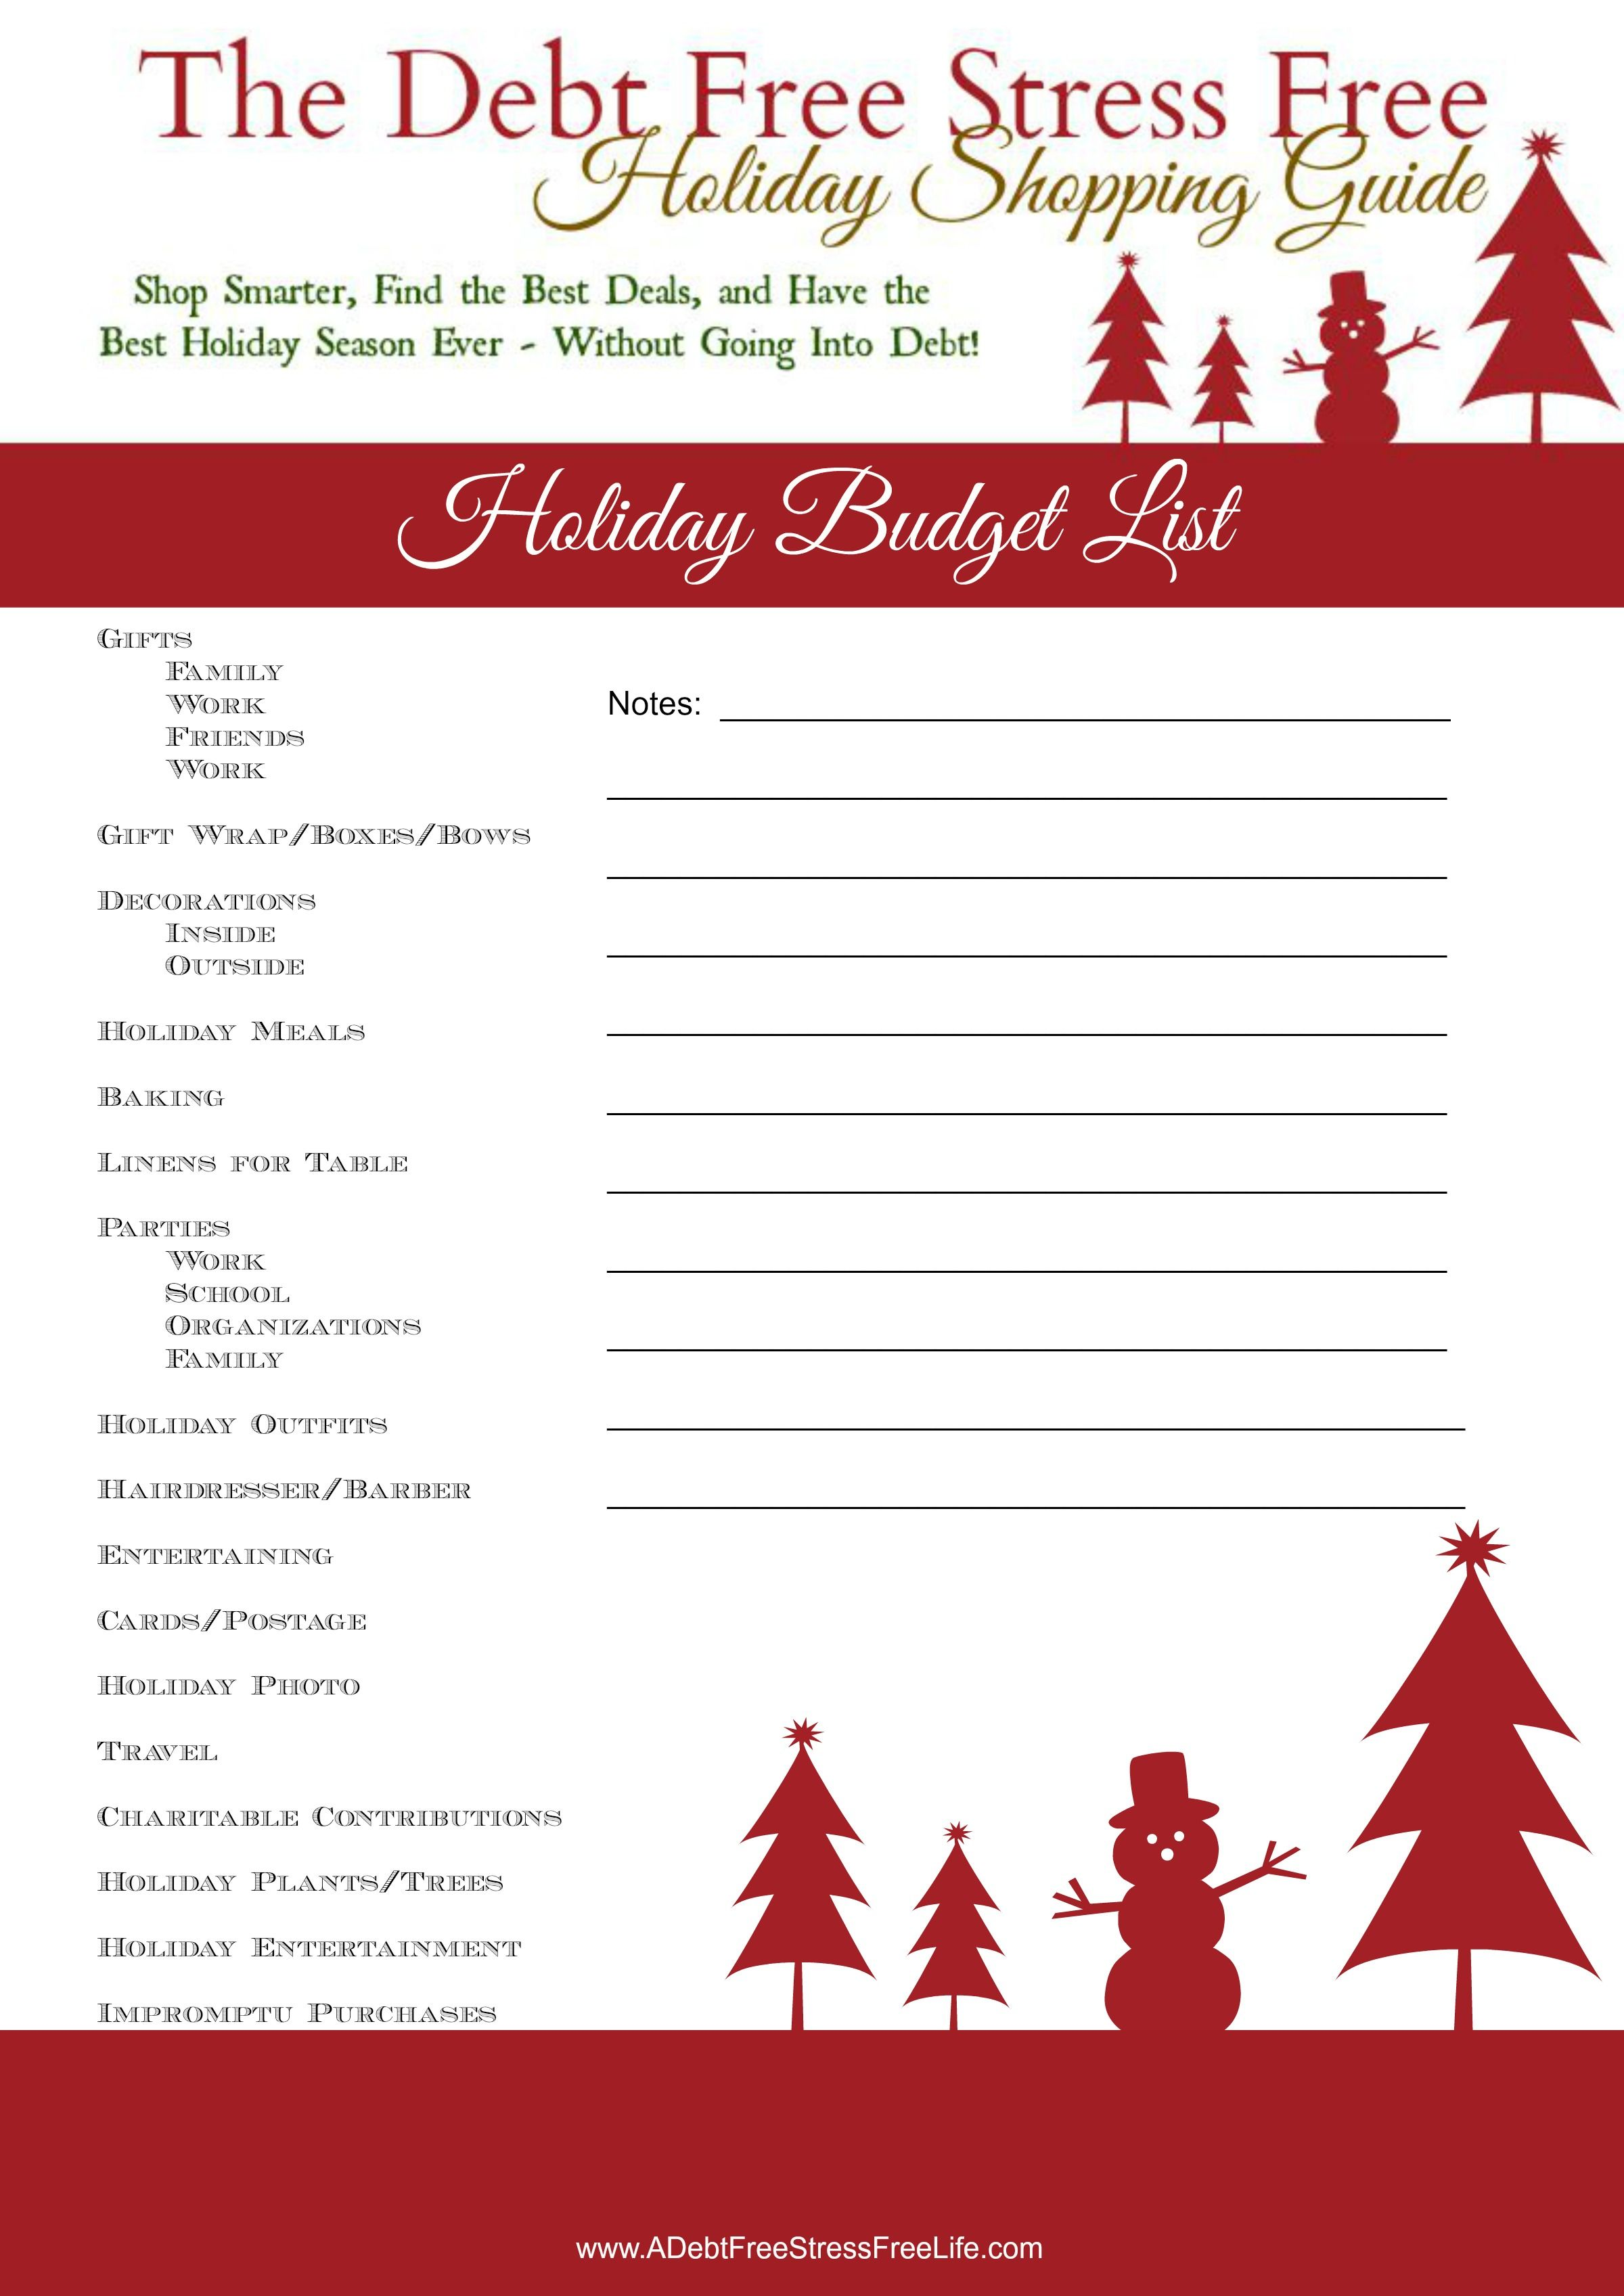 Holiday Budgeting Reminder List With Free Printable Budget Holidays Stress Free Holidays Holiday Help